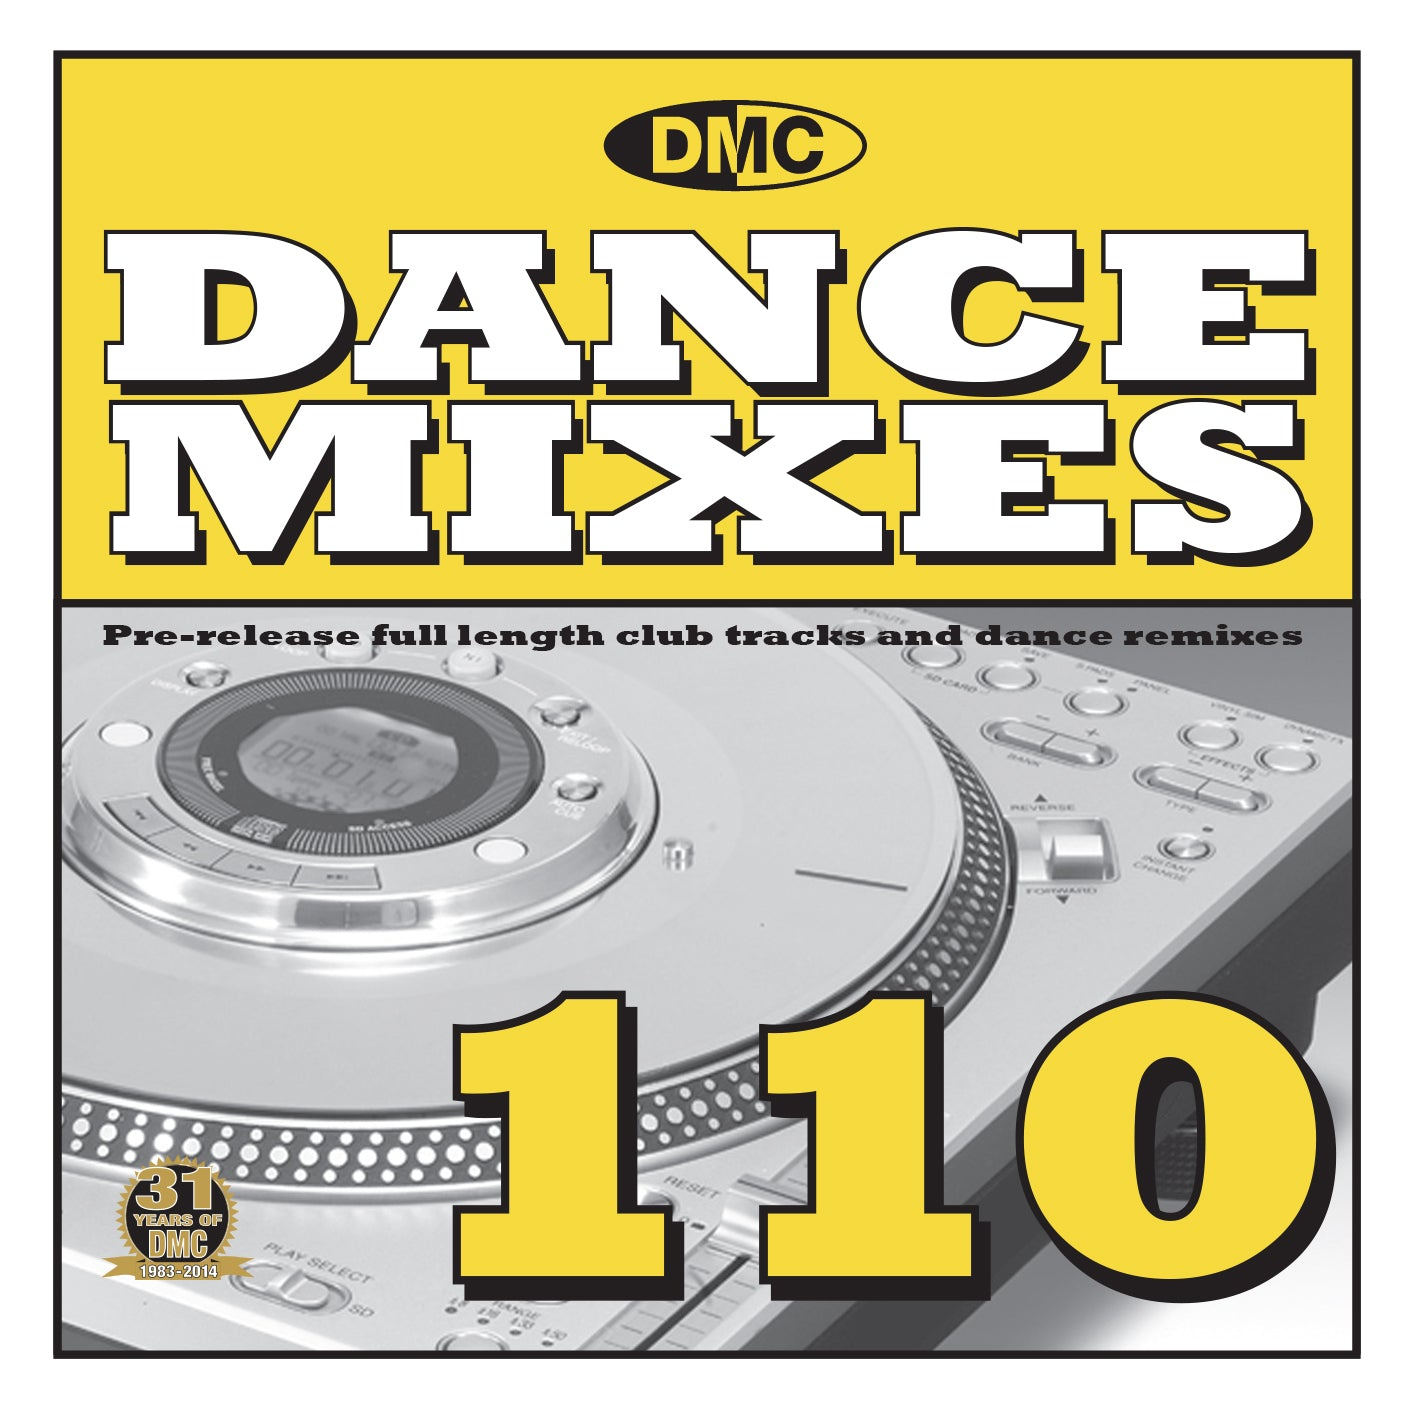 DMC DANCE MIXES 110 - New Release - Pre- Release Full Length Club Tracks and Dance Remixes